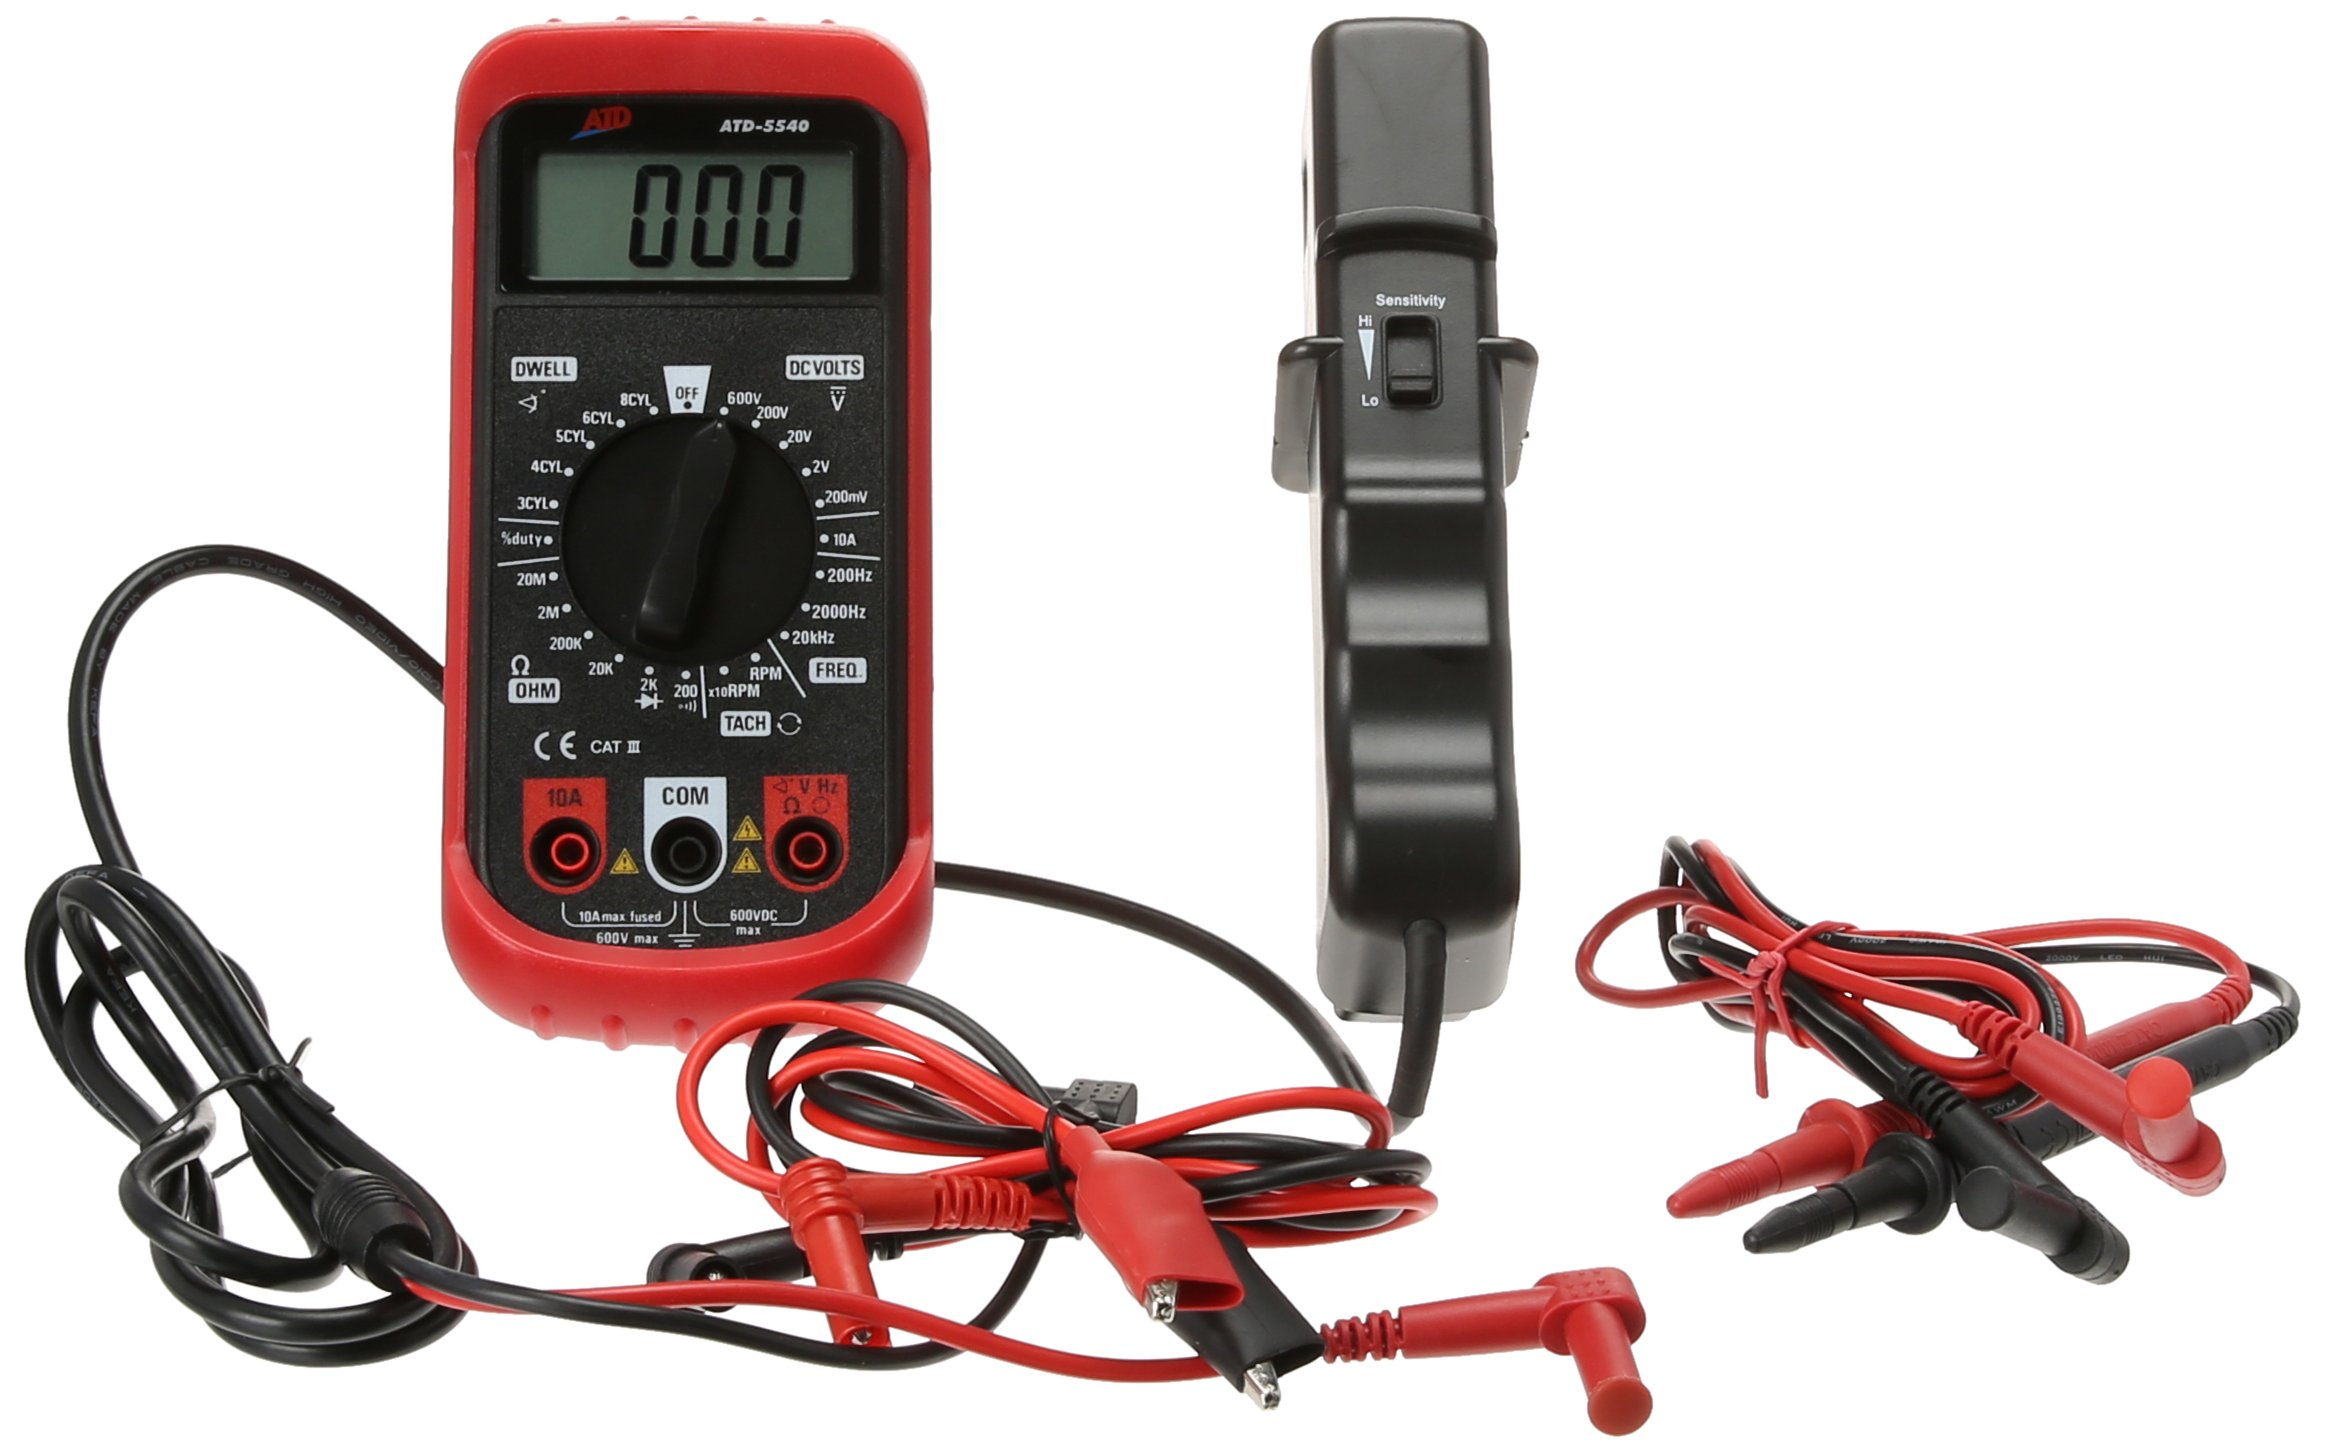 Advanced Tool Design Model ATD-5540 Multi-Function Automotive Tester with Inductive RPM Pick-Up and Two Sets of Test Leads by ATD (Image #1)